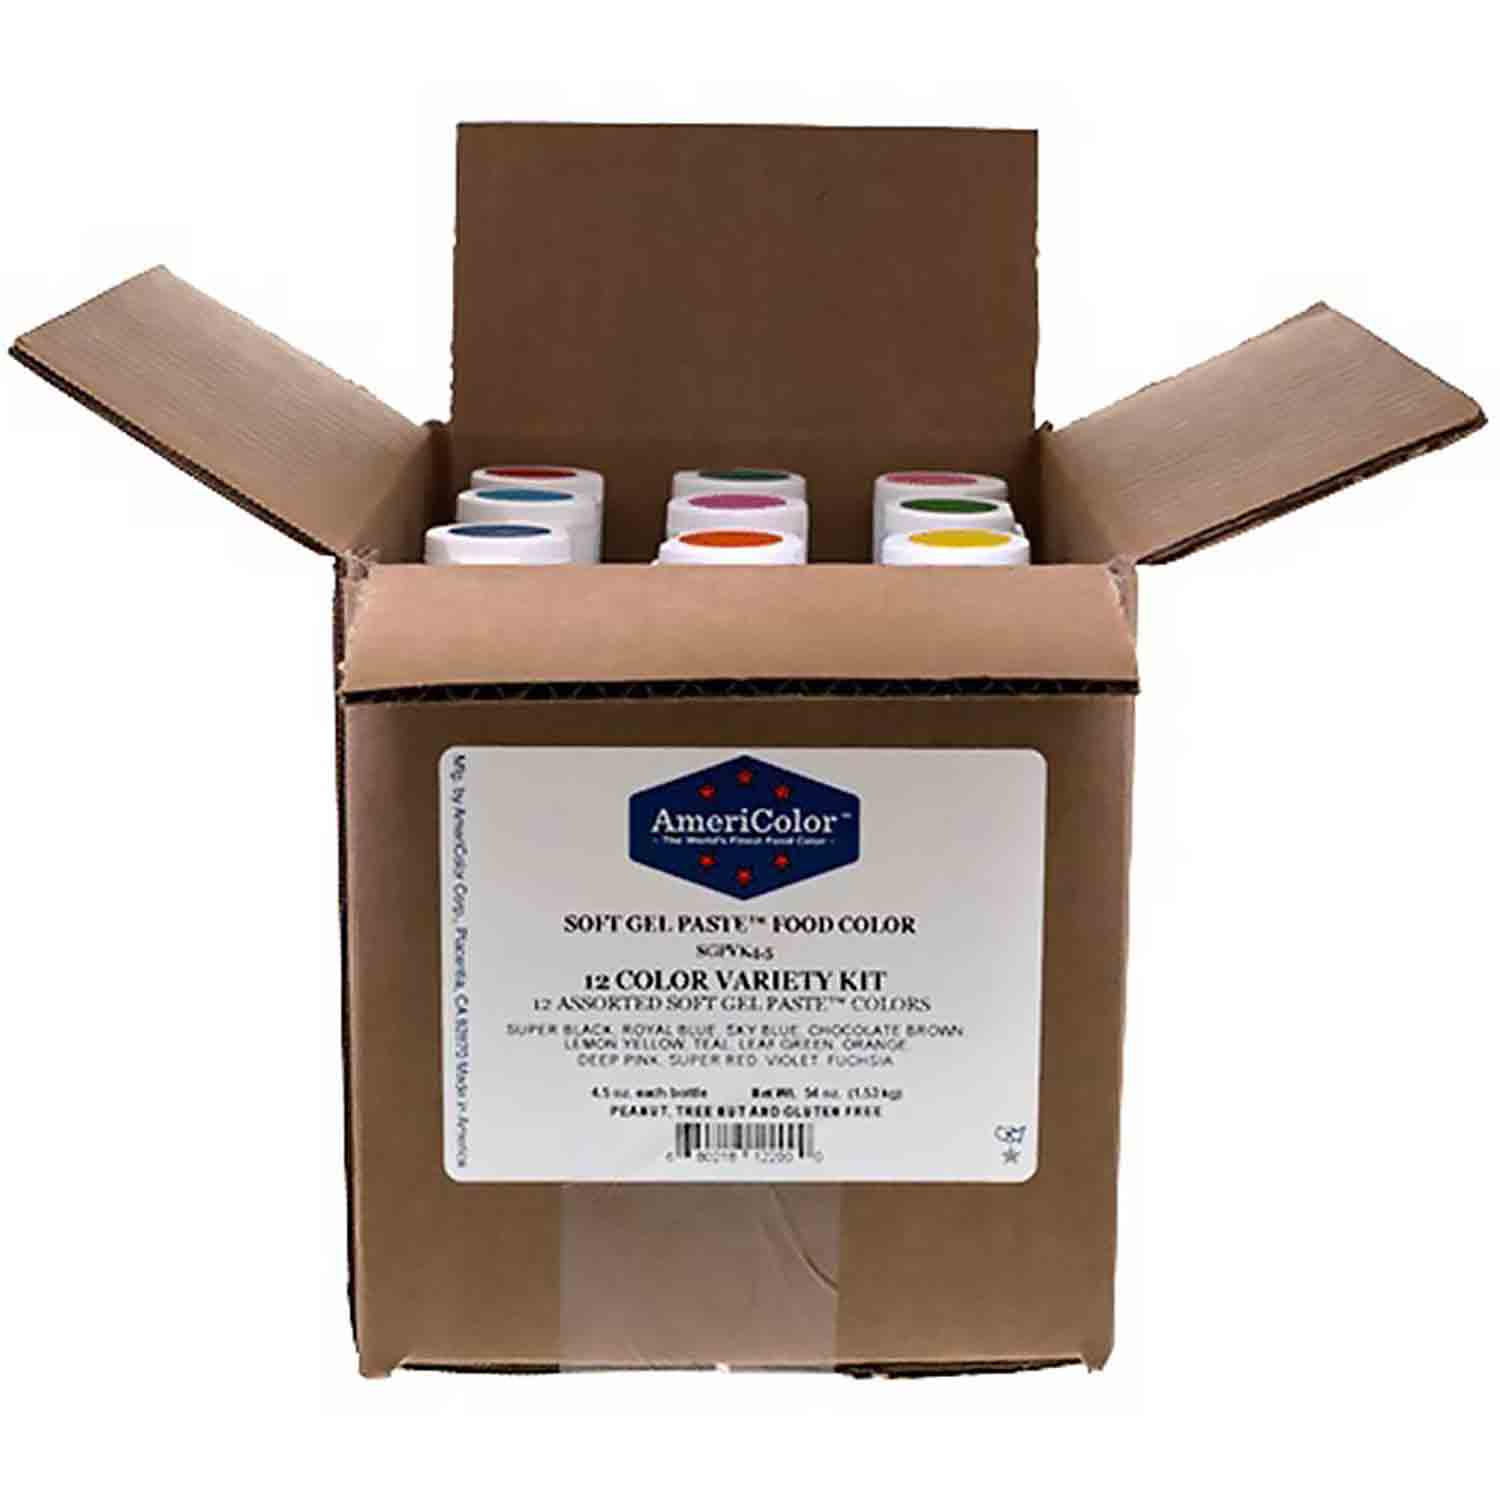 12 Color Variety AmeriColor® Soft Gel Paste™ Food Color Kit